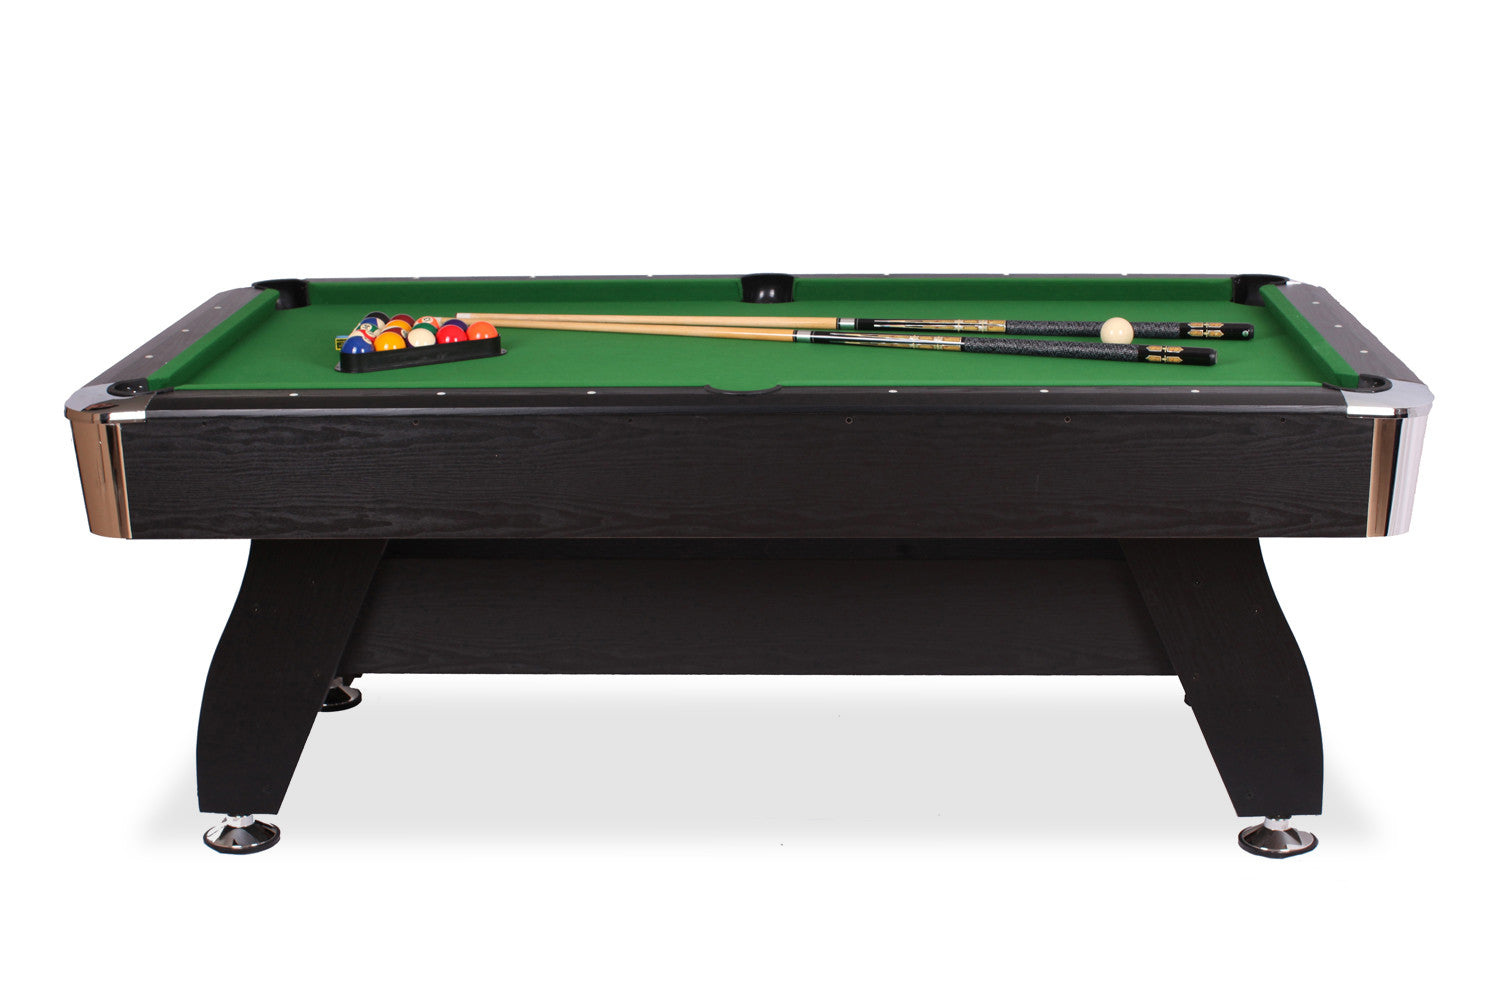 Billard am ricain club pro billards defaistre - Table et billard a la fois ...